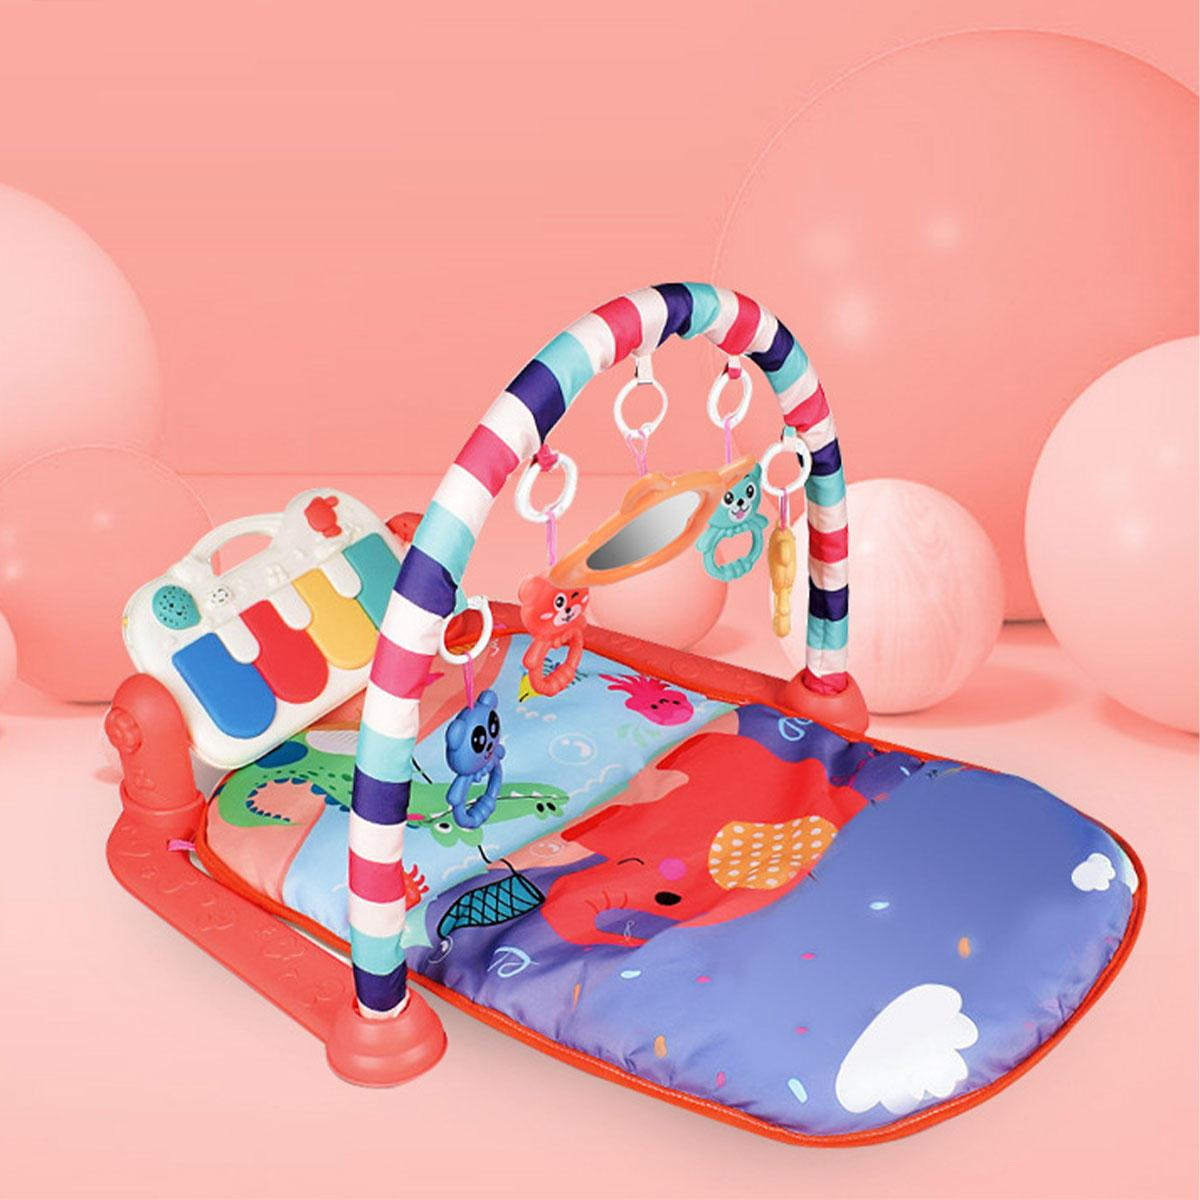 Delicate 3 In 1 Baby Infant Gym Play Mat Fitness Carpet Music Fun Piano Pedal Educational Toys -  Red